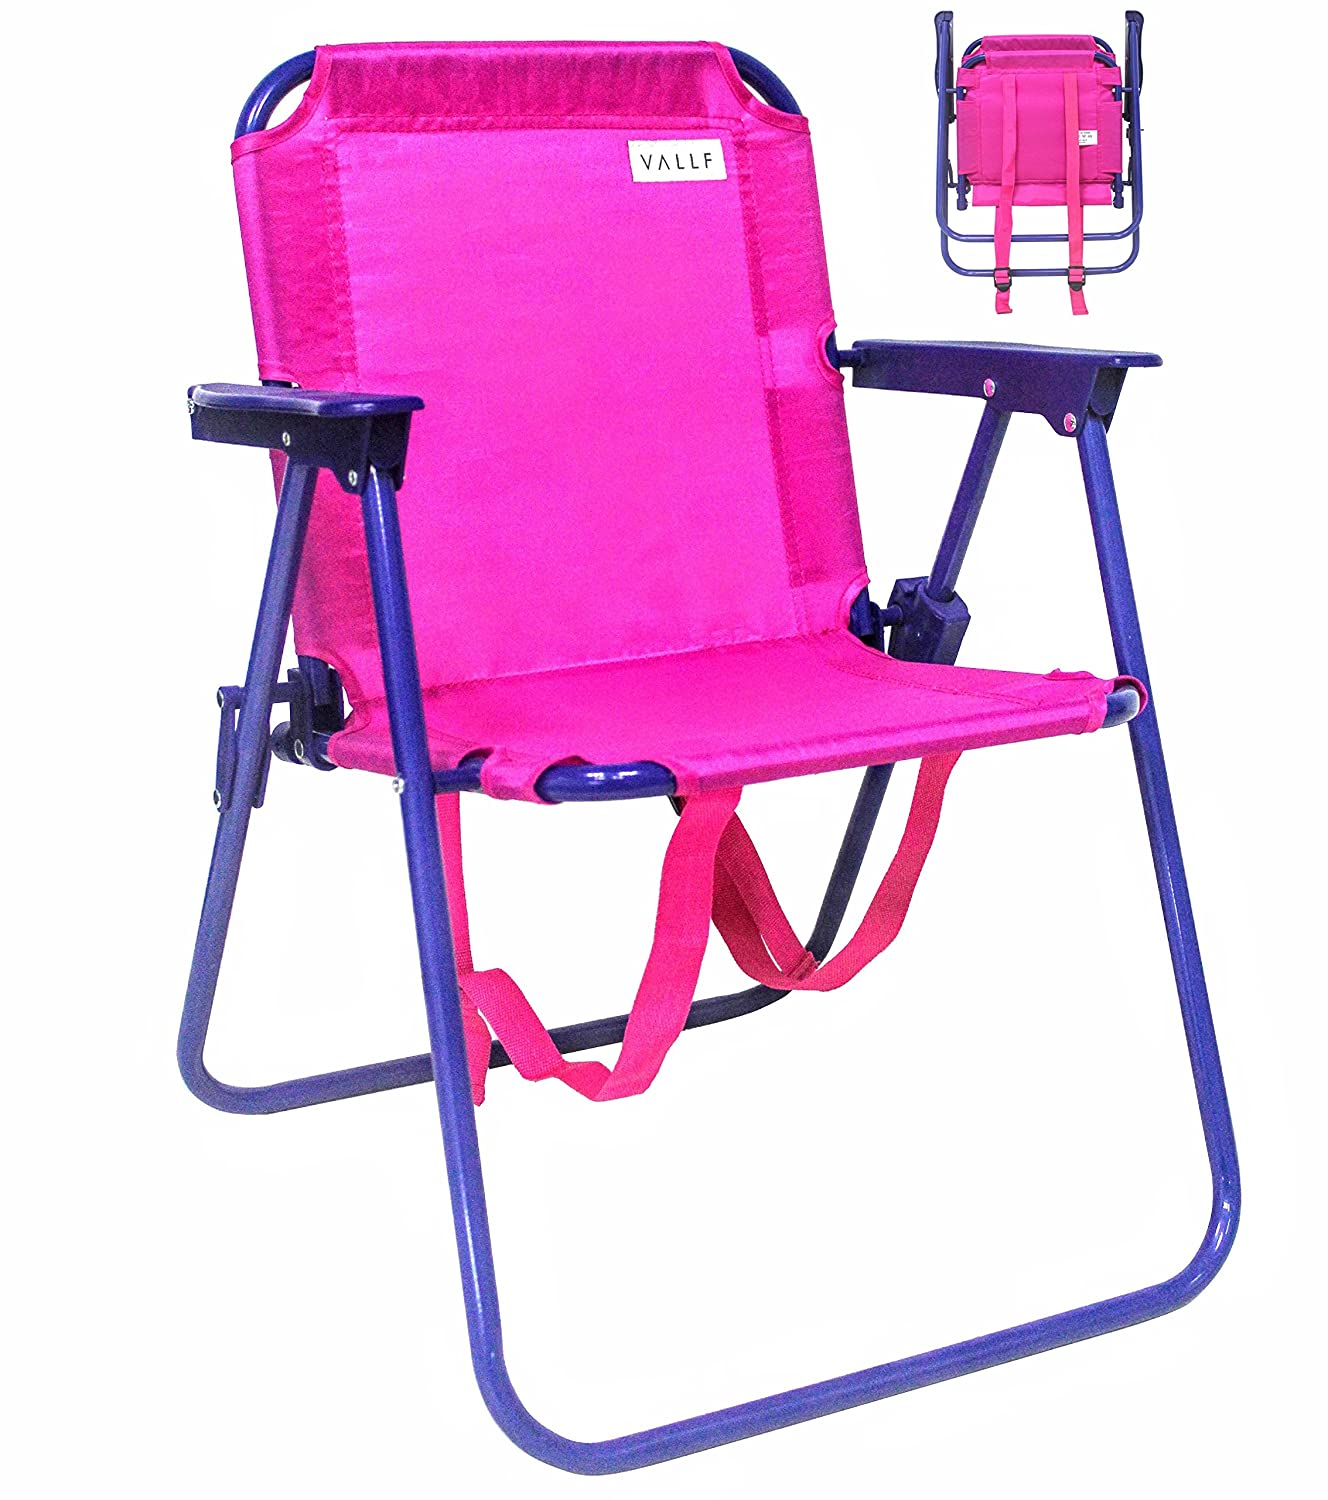 Peachy Convenient Portable And Durable Ozark Trail Kids Director Pabps2019 Chair Design Images Pabps2019Com